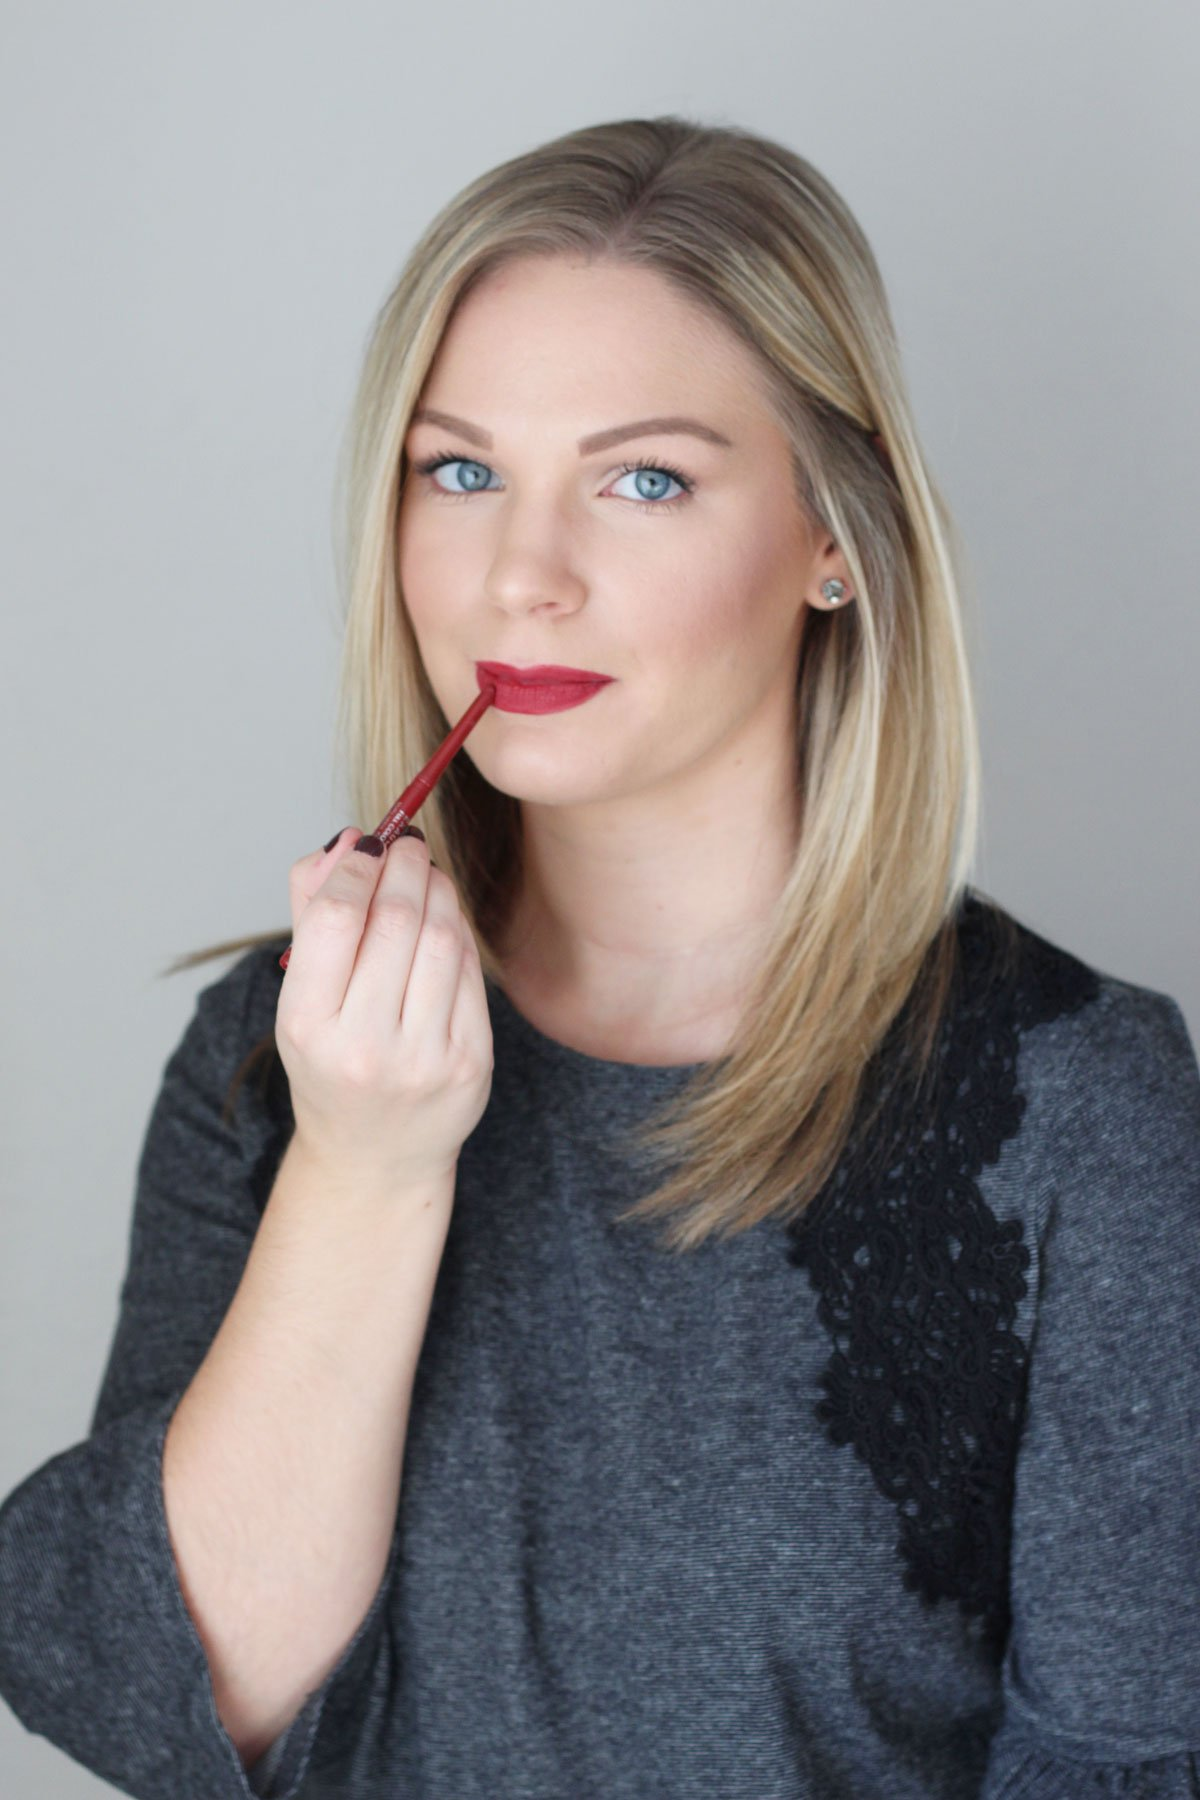 How to Make Your Holiday Lips Last - Rimmel Exaggerate Full Colour Lip Liner in Ravish